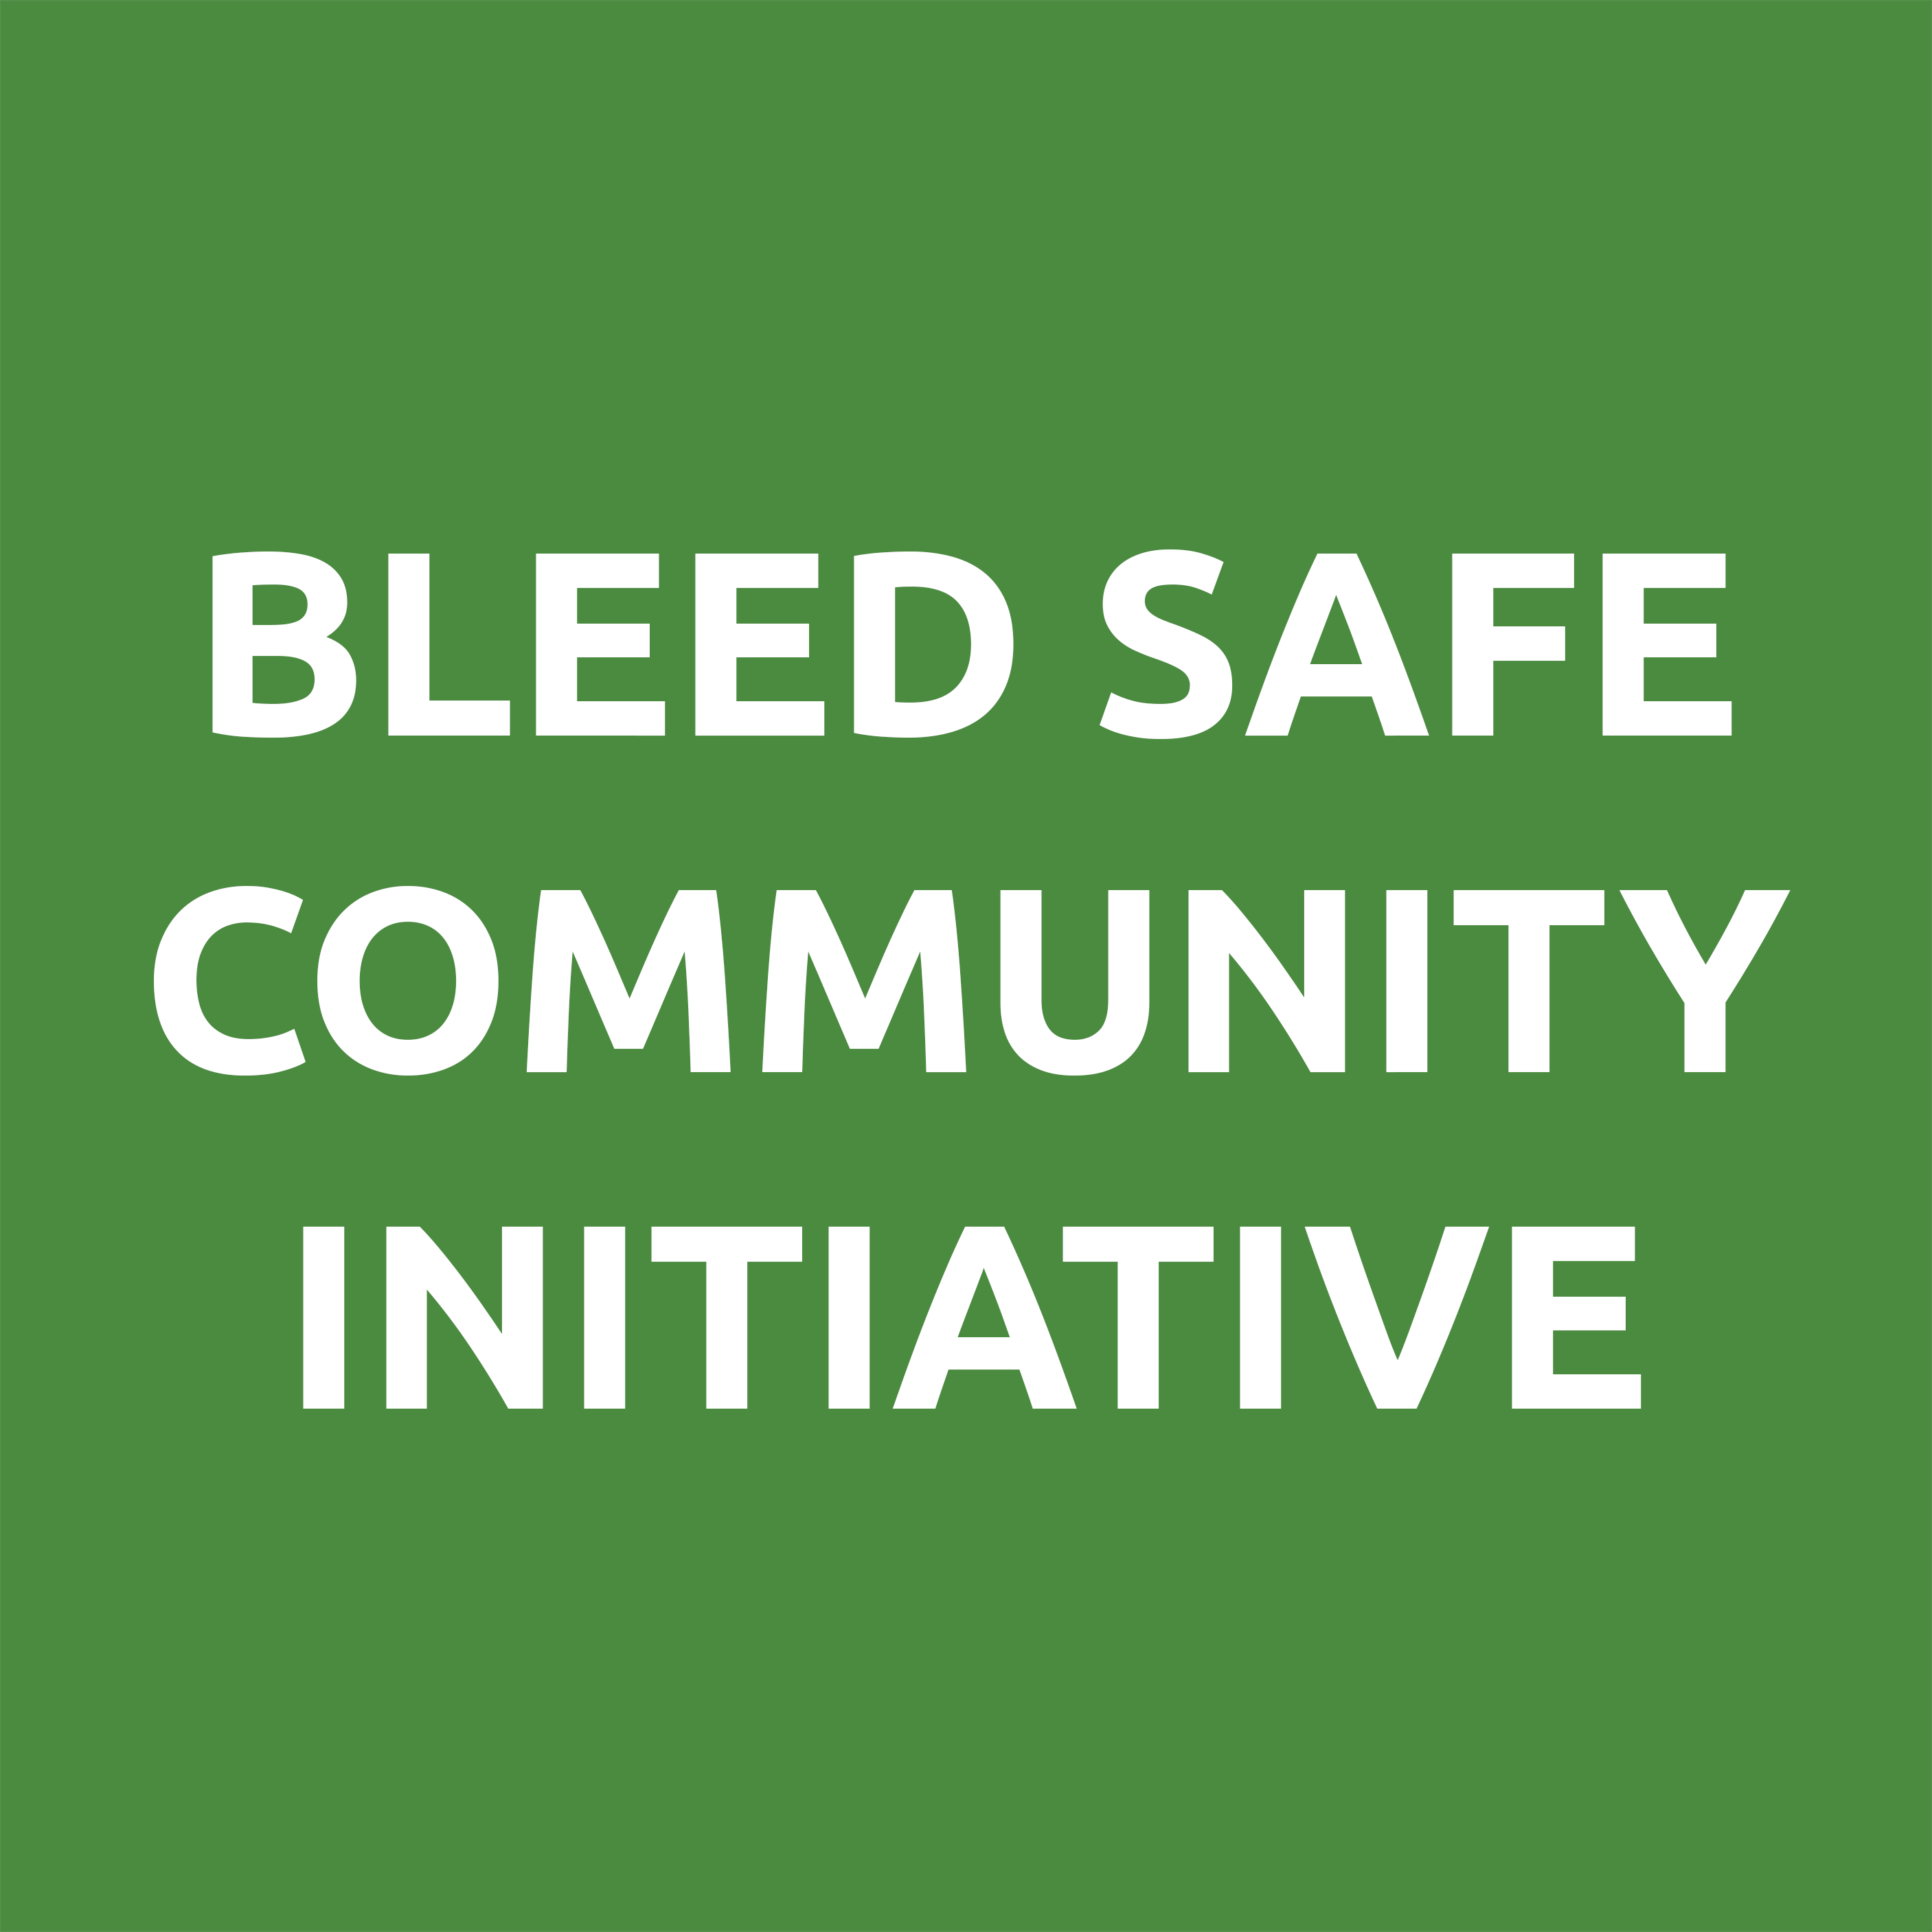 bleed safe community initiative